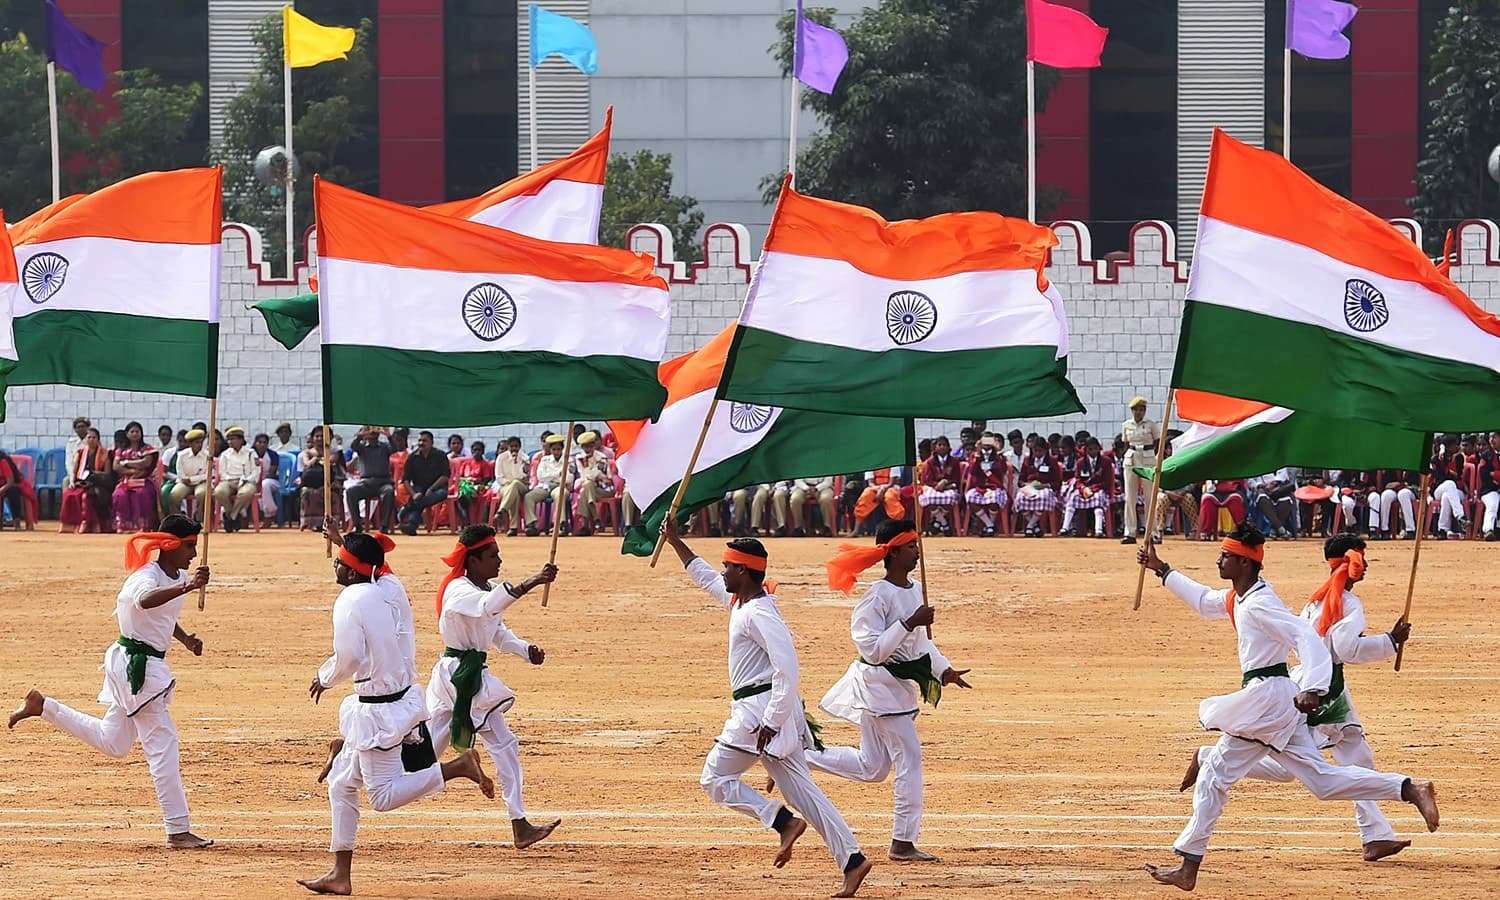 Indian school children take part in a cultural performance during an event to mark Republic Day at the Manek Shaw Parade Grounds in Bangalore.— AFP